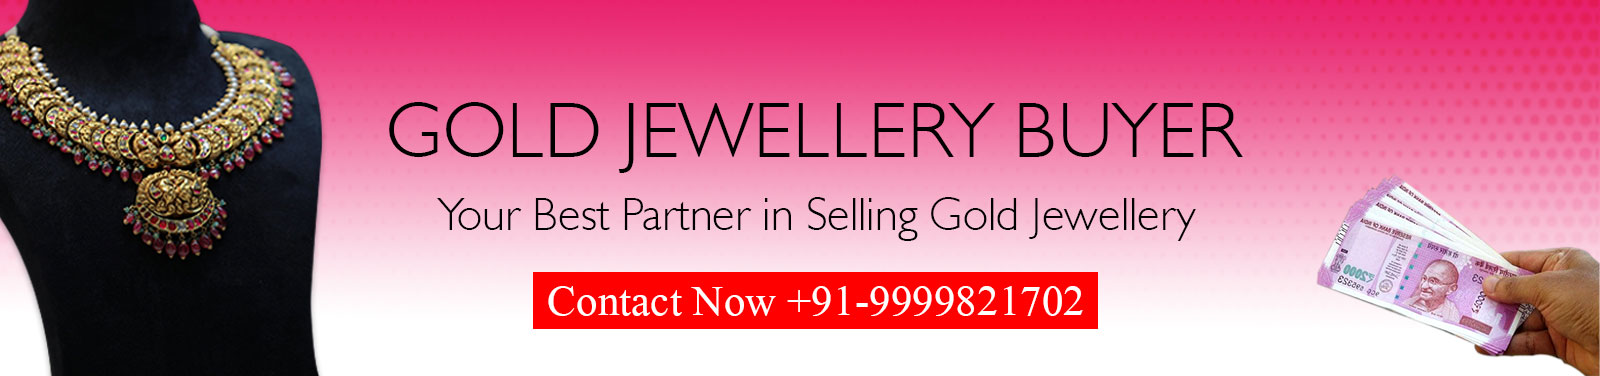 Best-place-To-Sell-Gold-Jewellery-for-Cash